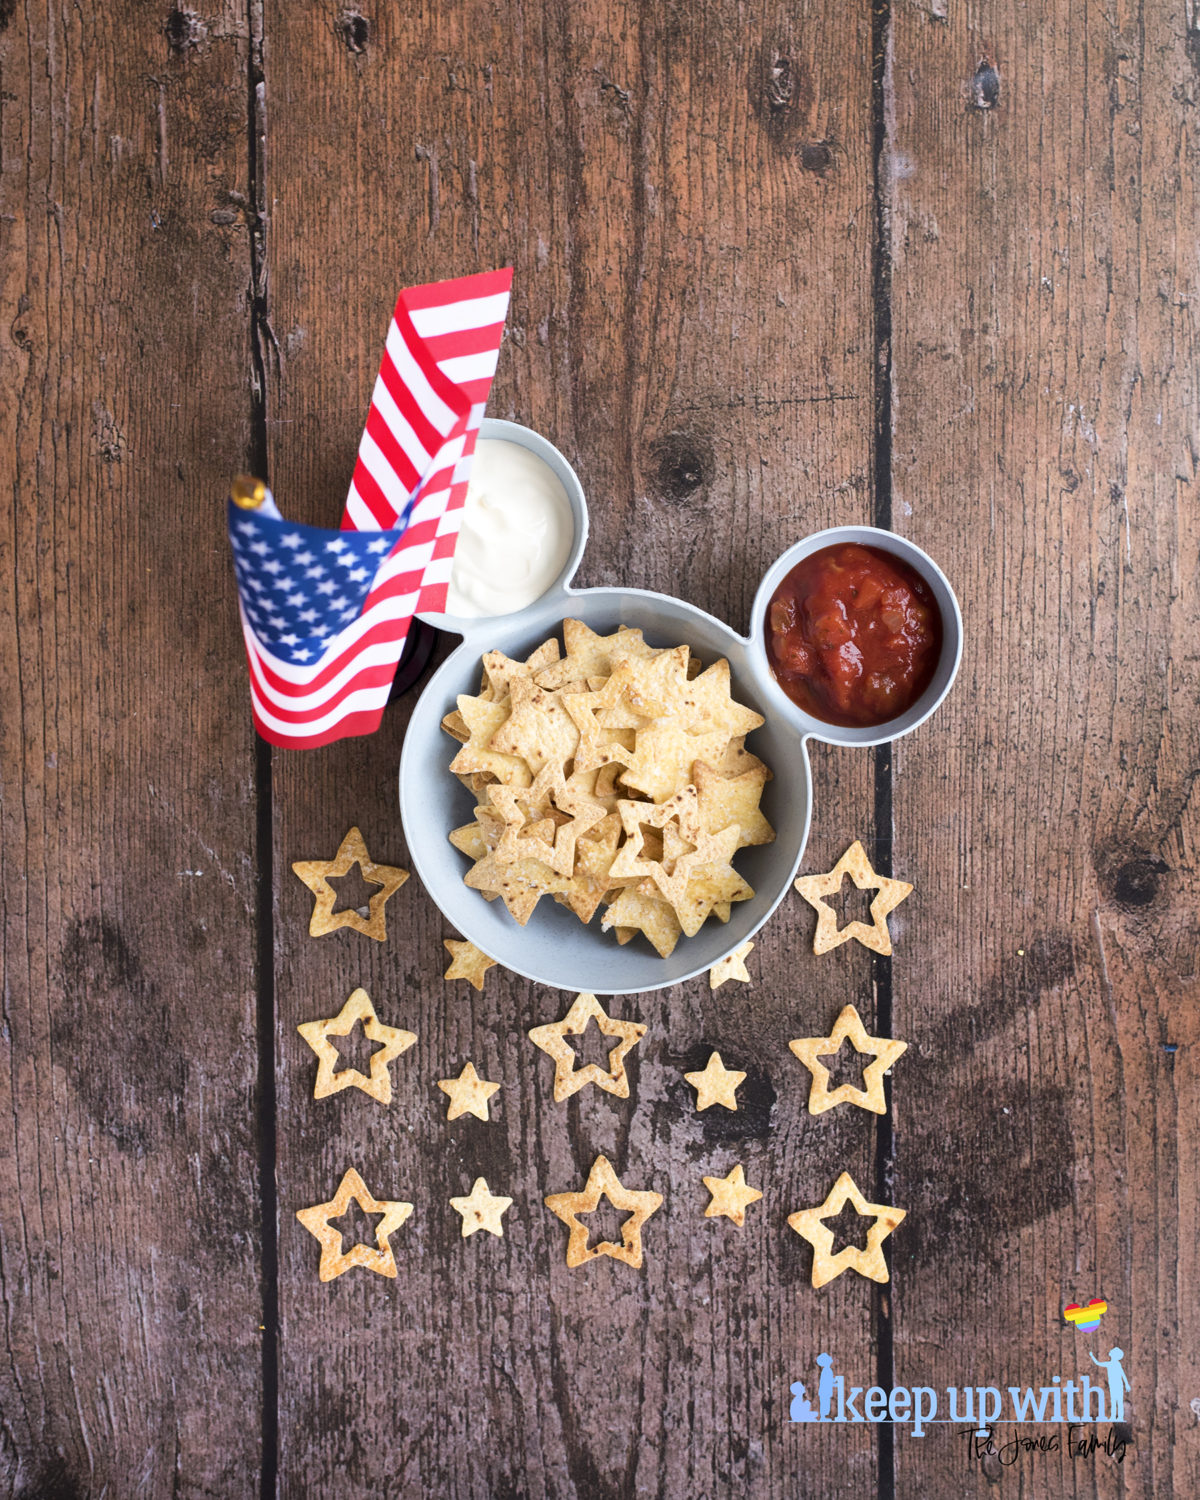 Image shows a blue bowl in the shape of Mickey Mouse suitable for chips 'n' dip. There is an American flag stood close to the bowl and inside the bowl is tomato salsa, soured cream, and star spangled nacho chips. Image by keep up with the jones family.